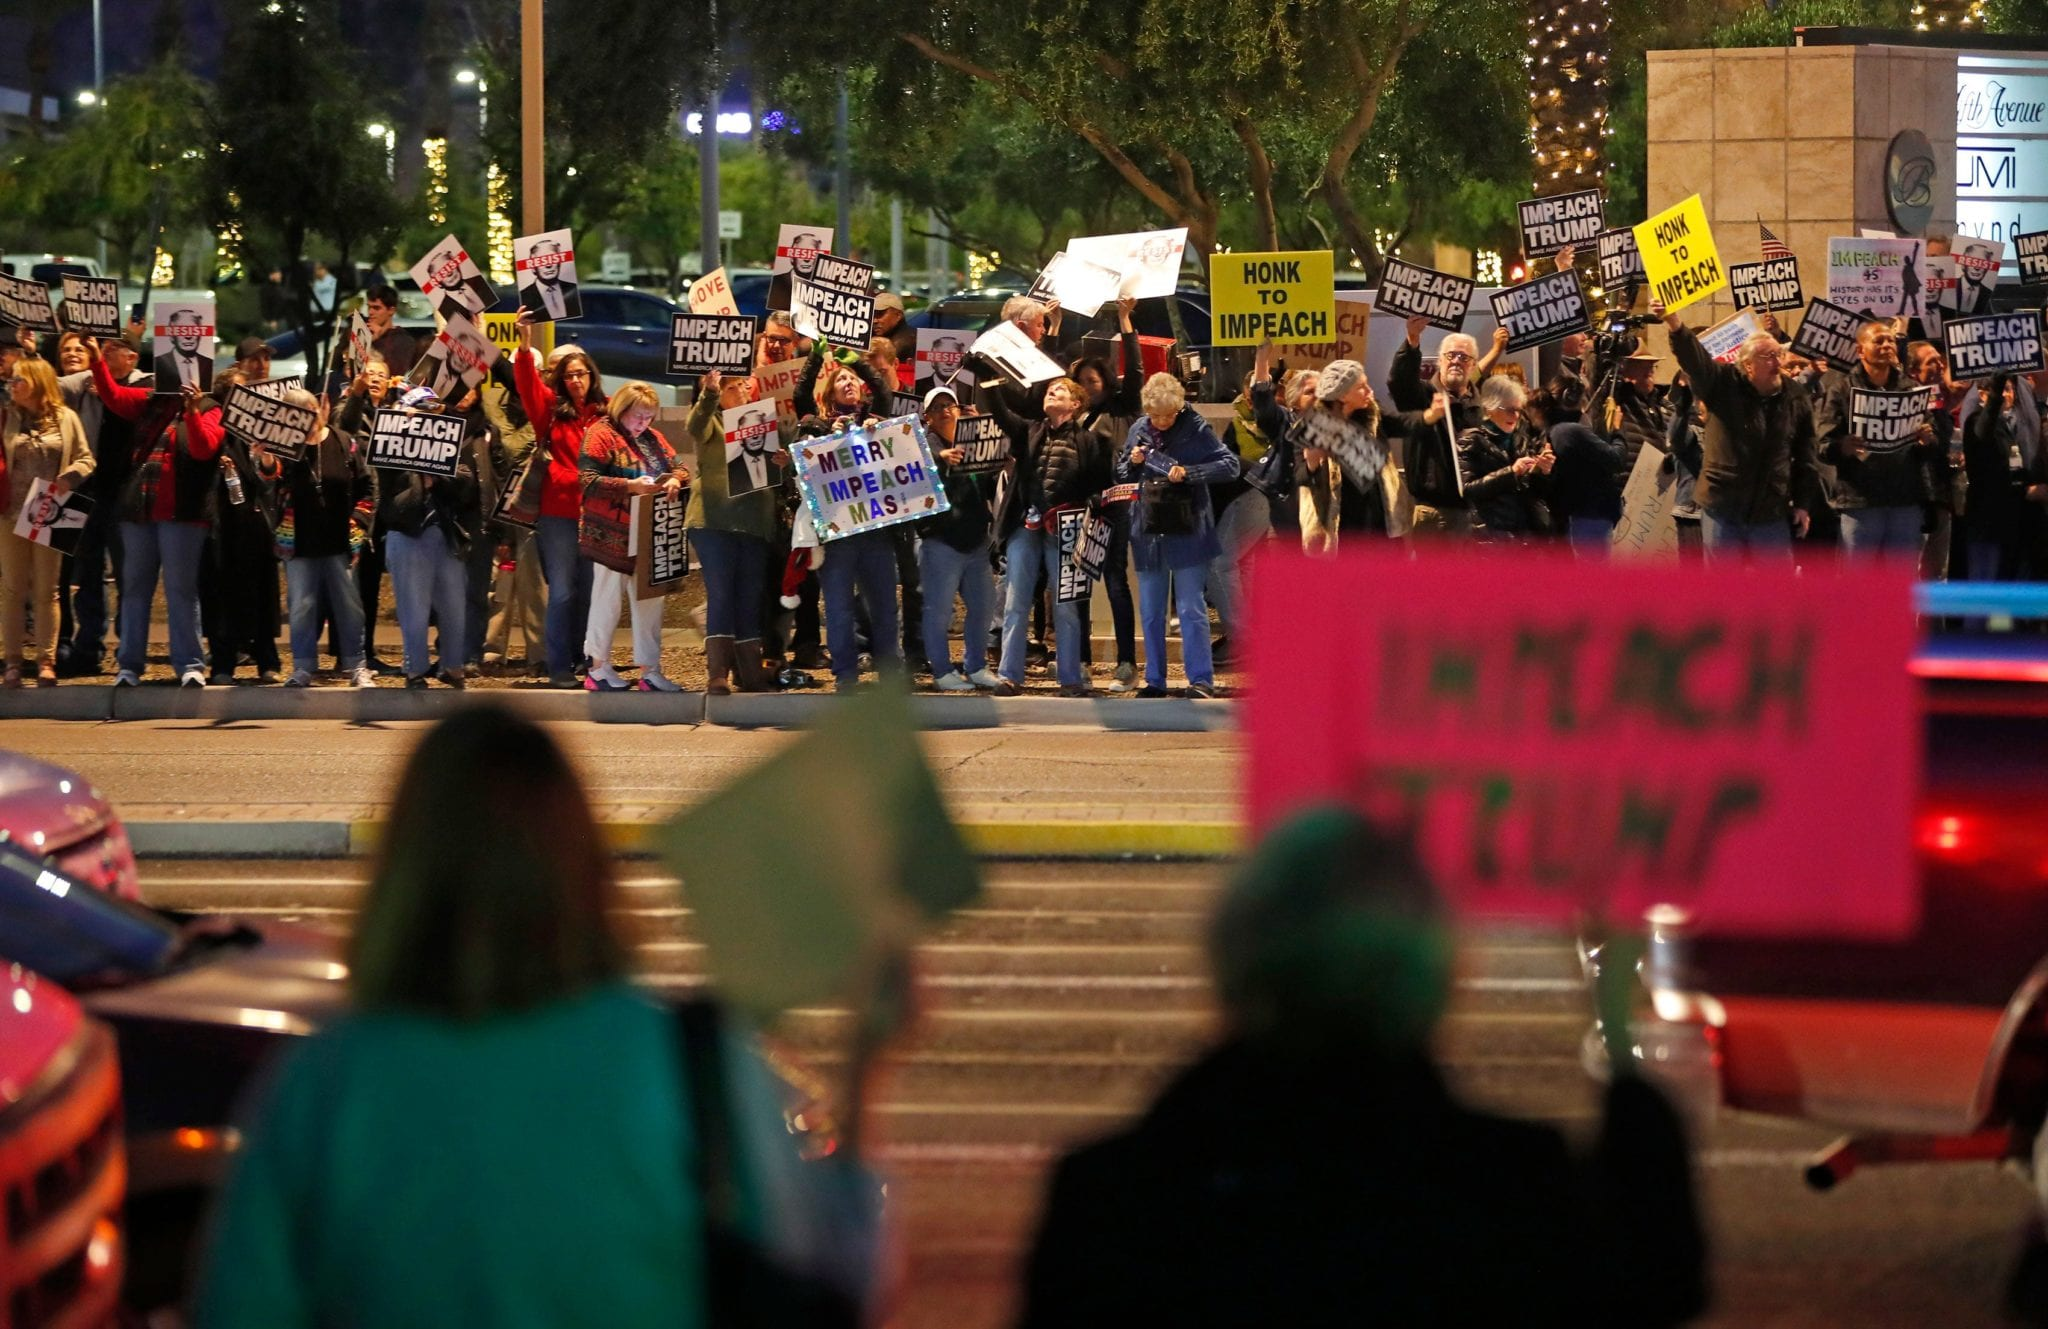 Protesters call for Trump impeachment at Phoenix rally